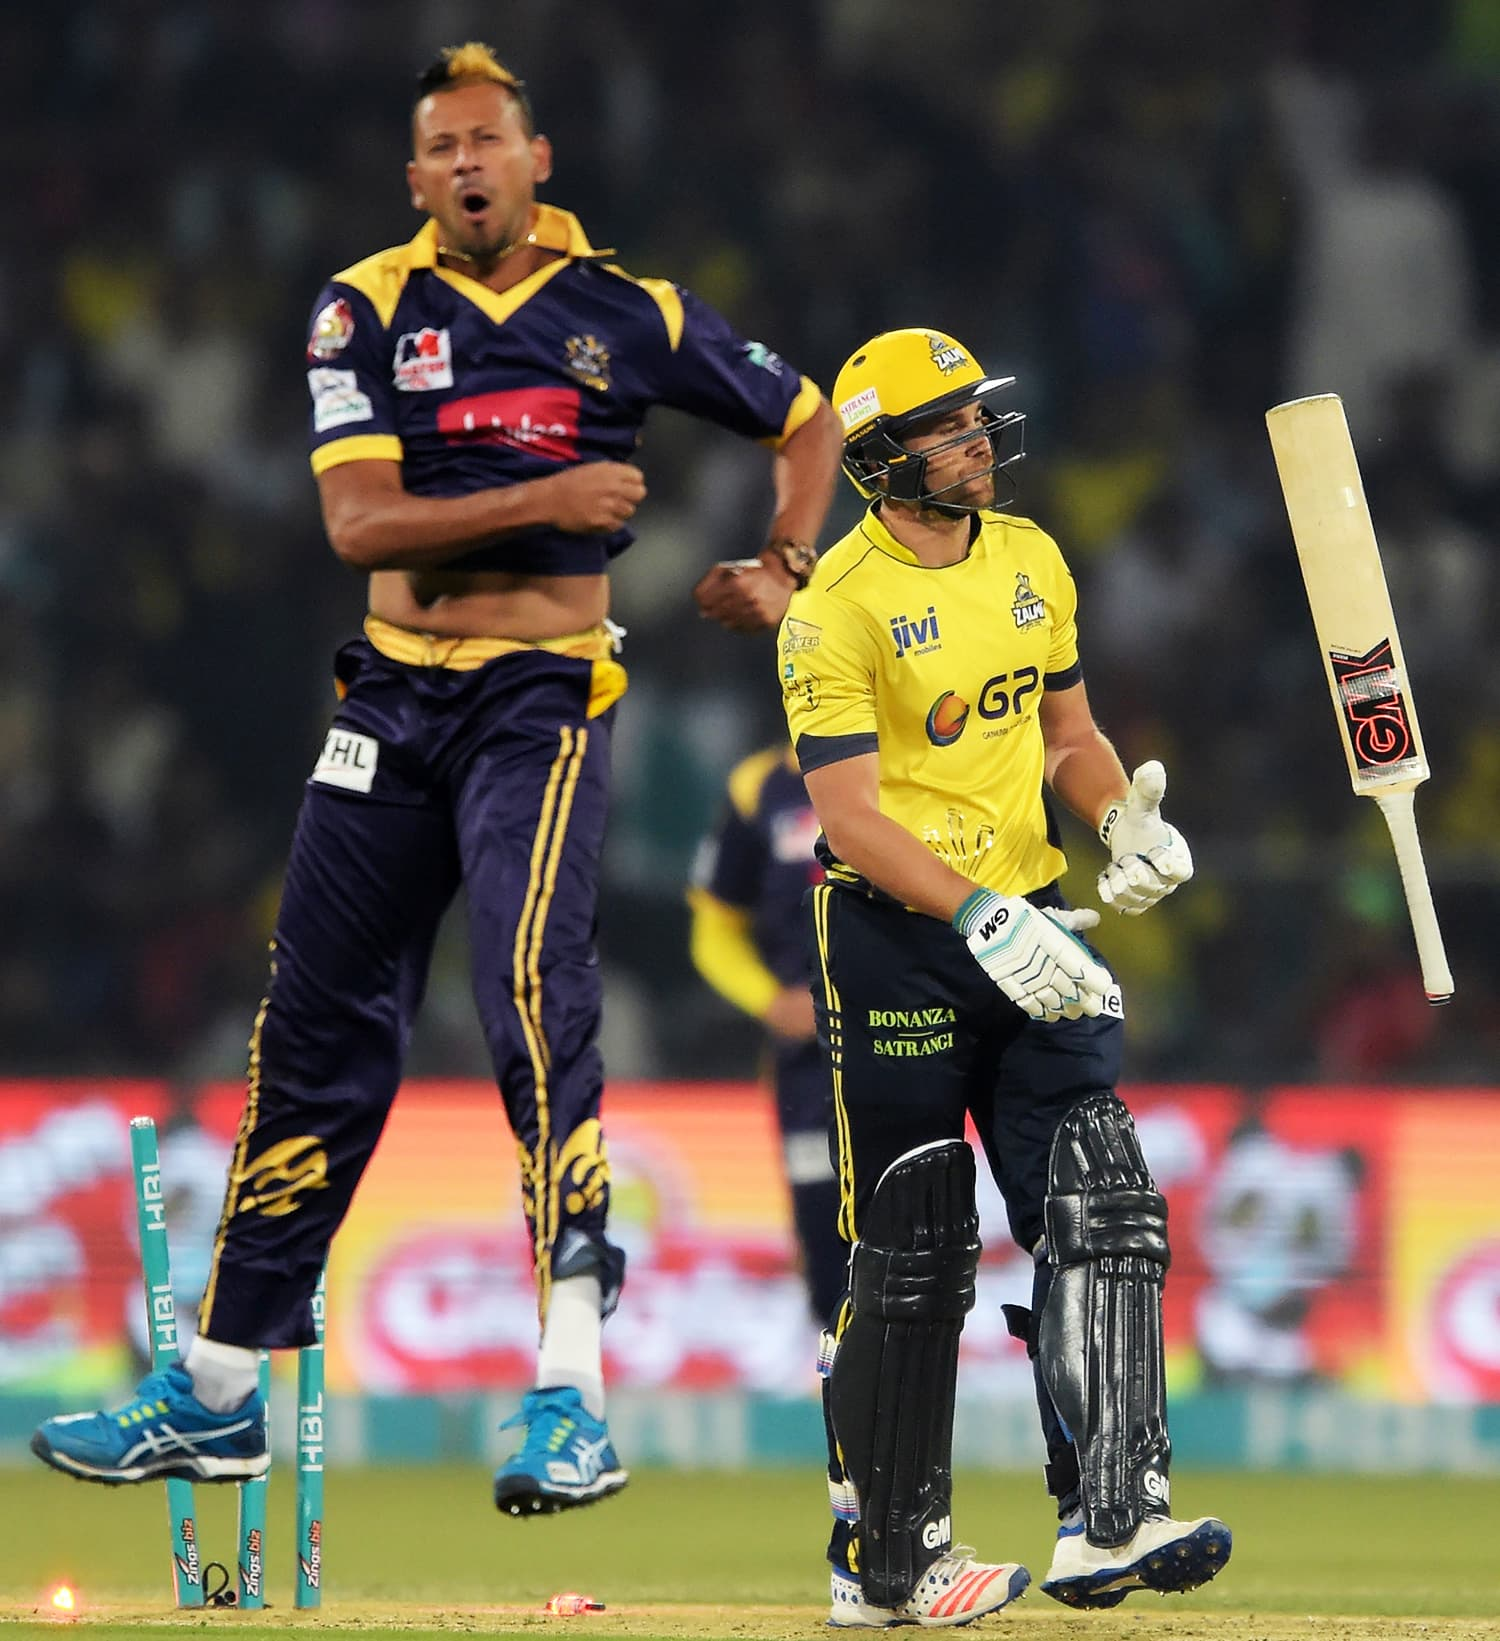 Dawid Malan (R) of Peshawar Zalmi reacts after his dismissal by Quetta Gladiators bowler Rayad Emrit (L). ─ AFP